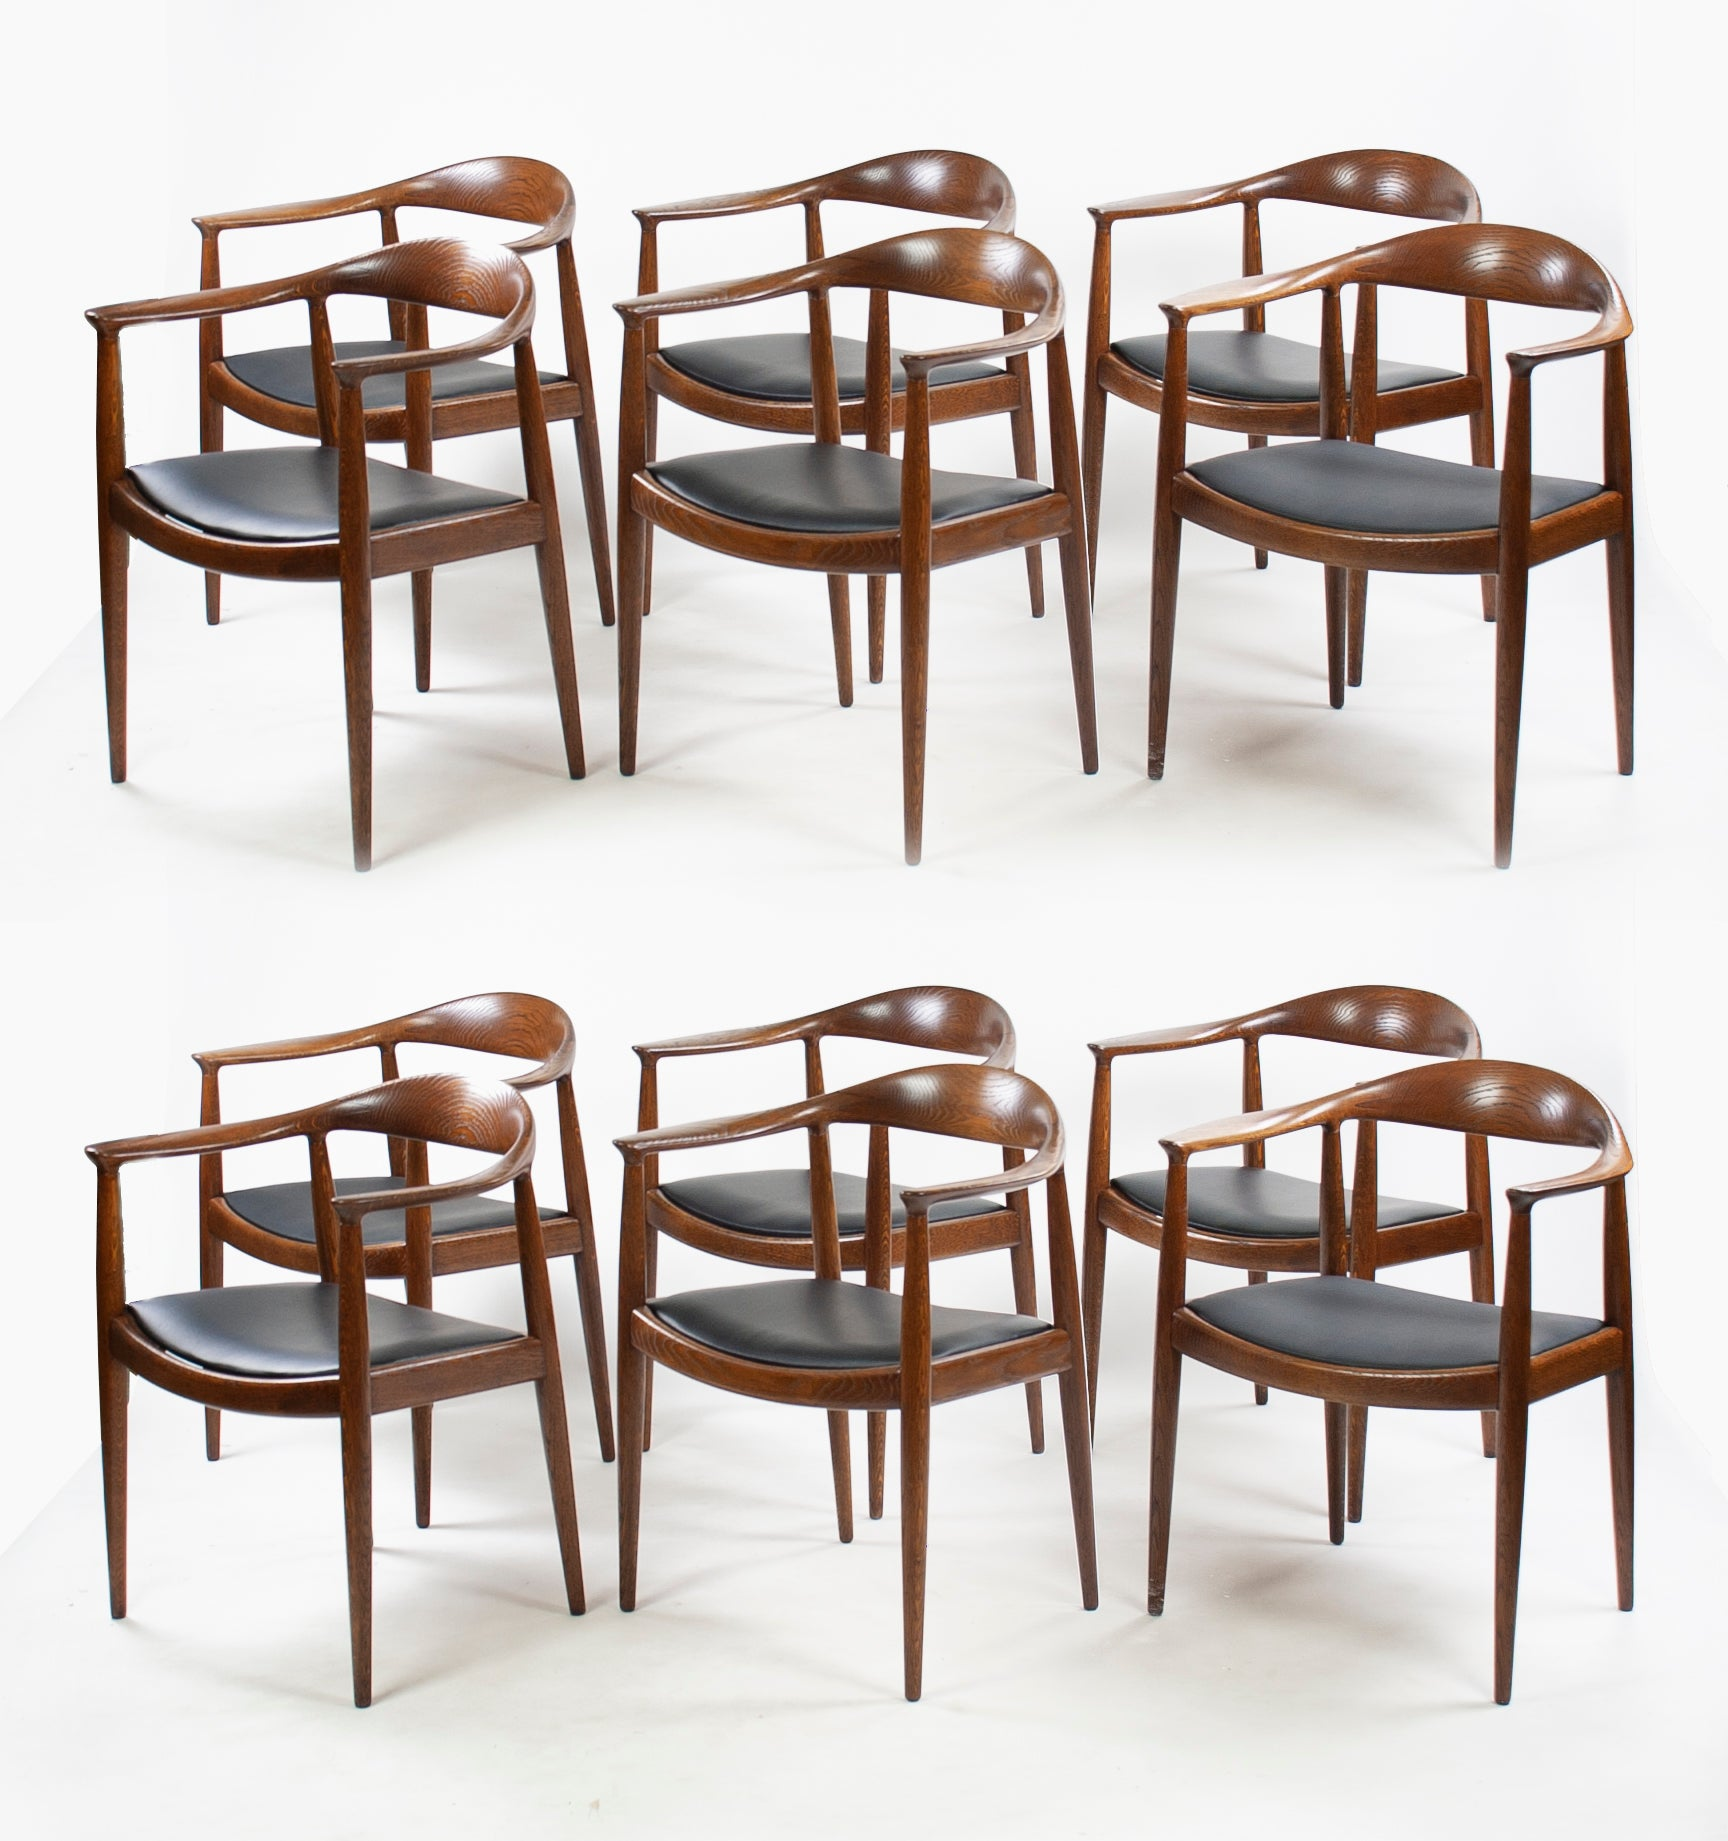 12x Hans Wegner Round The Chair Johannes Hansen Denmark For Knoll Oak Armchairs